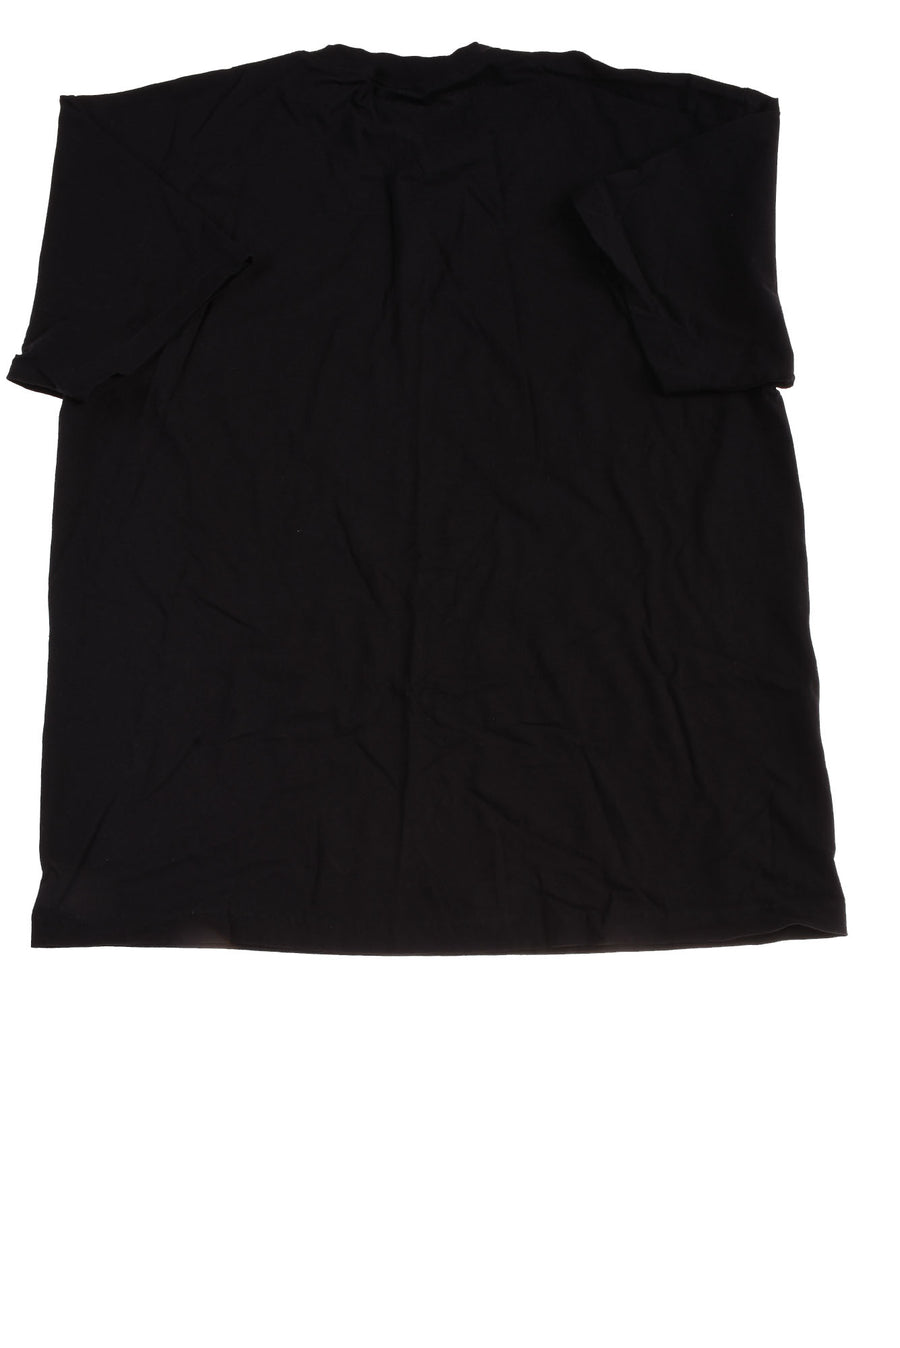 USED Alstyle Men's Shirts X-Large Black